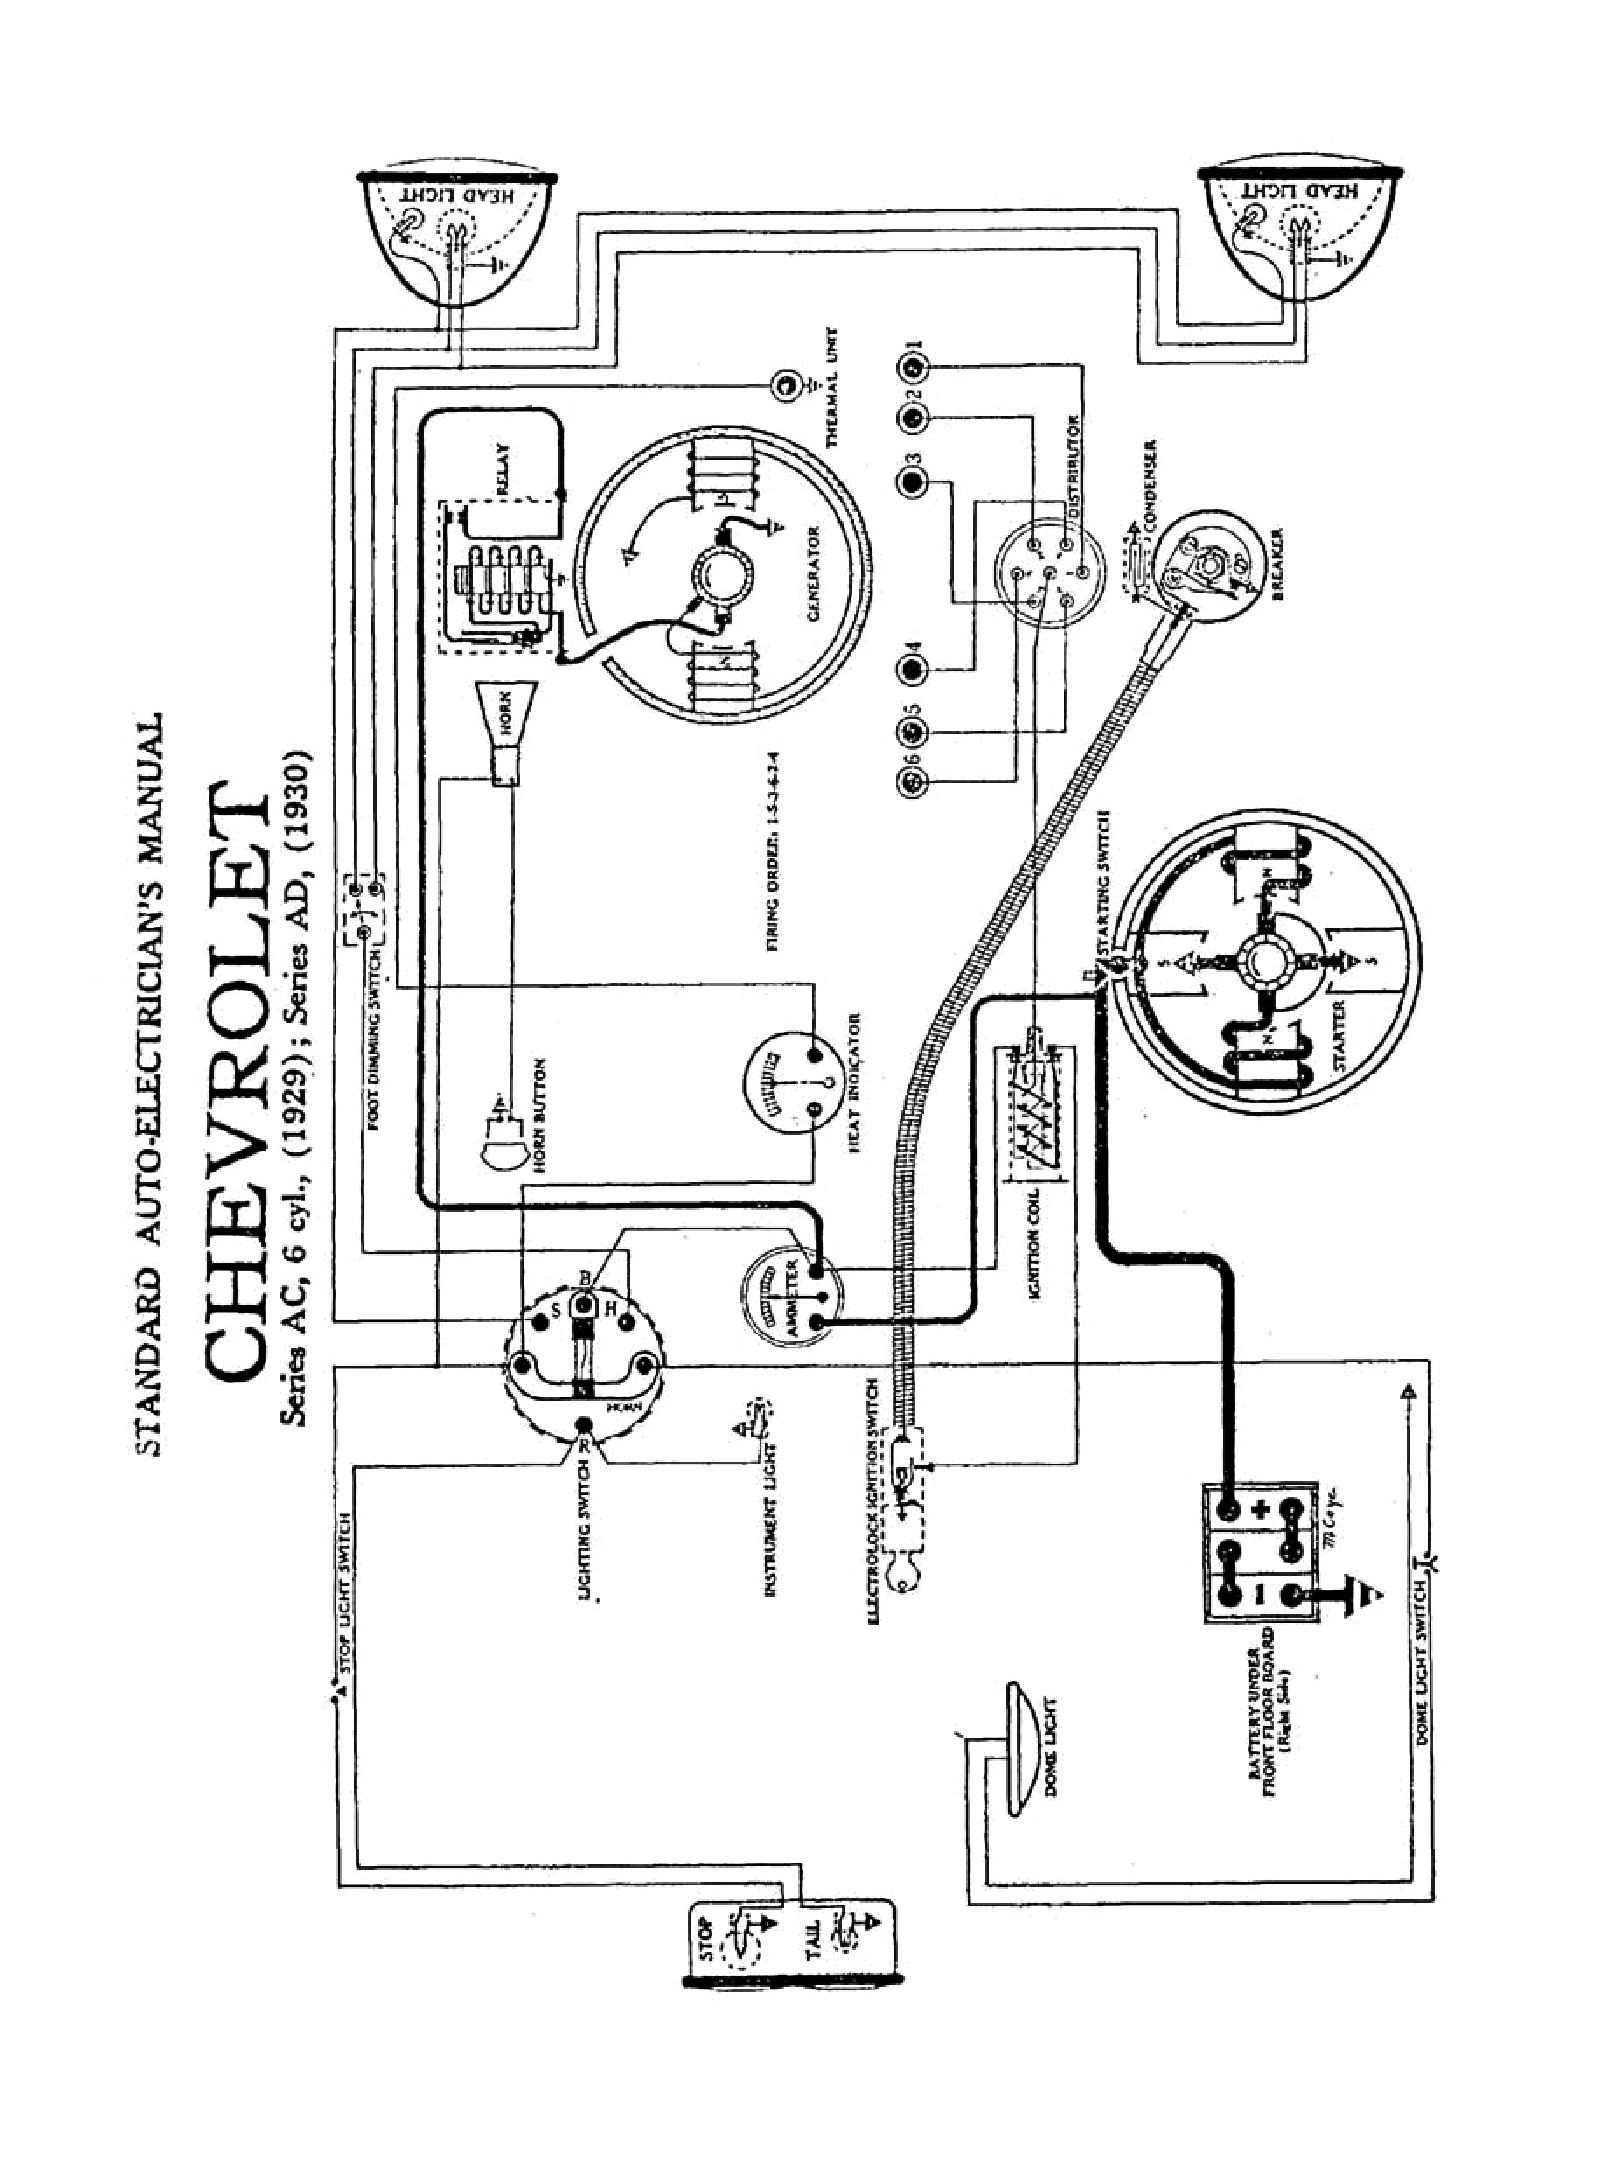 ps1400 wiring diagram printable wiring diagram schematic harness